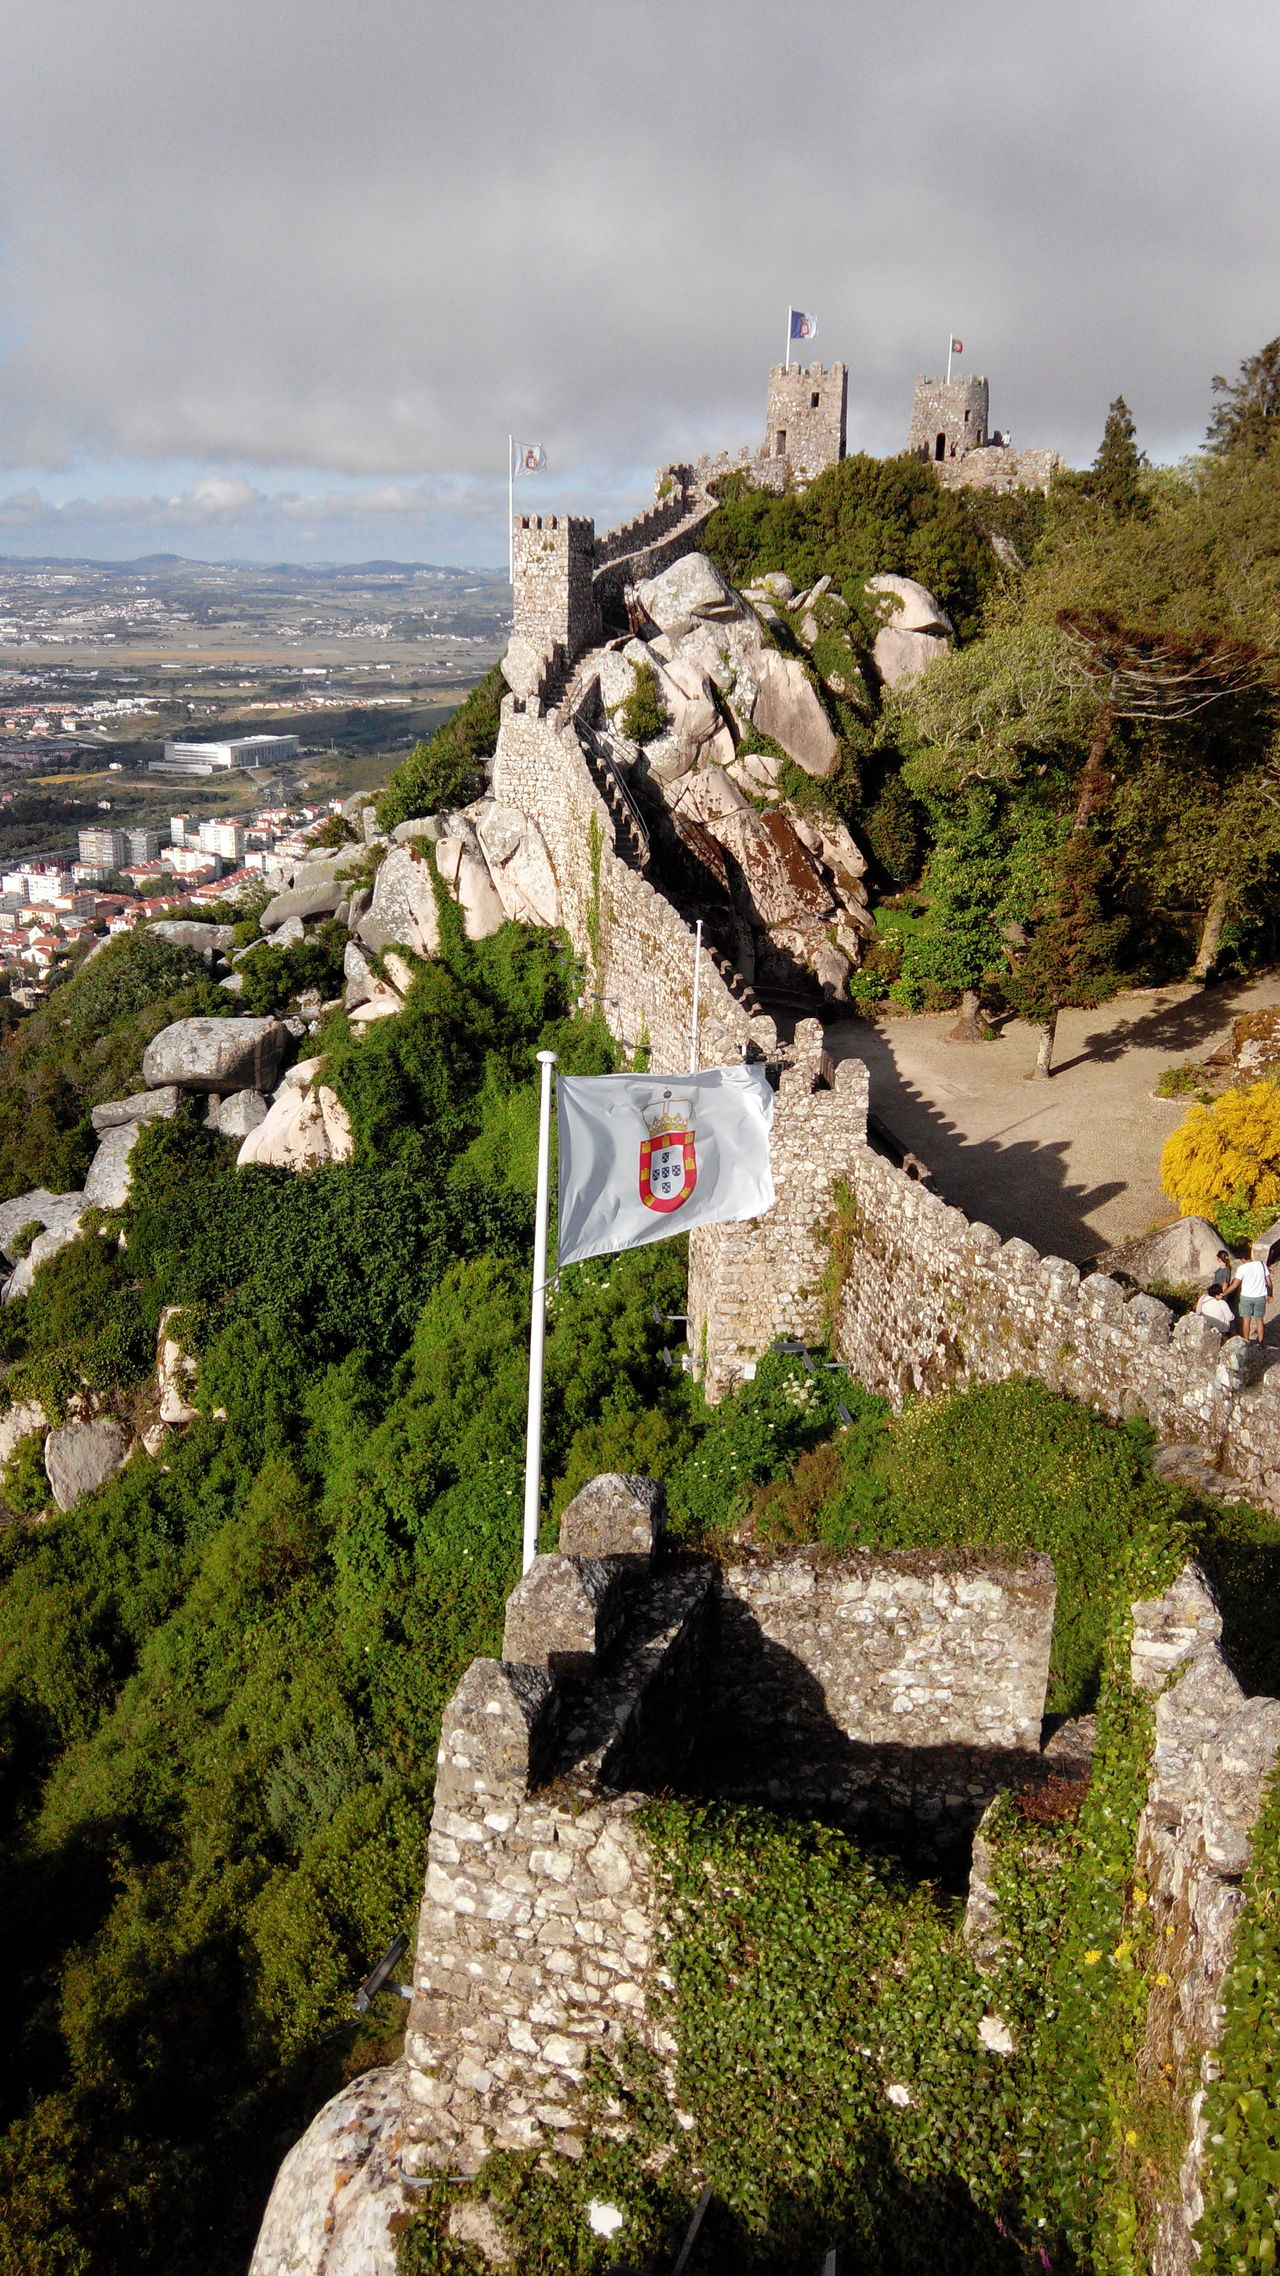 View Over The City Castle Walls View From The Top Historical Place Castle Wall Murals Castleporn Muralha Castles Rock Wall Wall Castle Door History Flag Castle Window Old Portuguese Flag Monarcy Portuguese Portugal Flag Castle Flags In The Wind